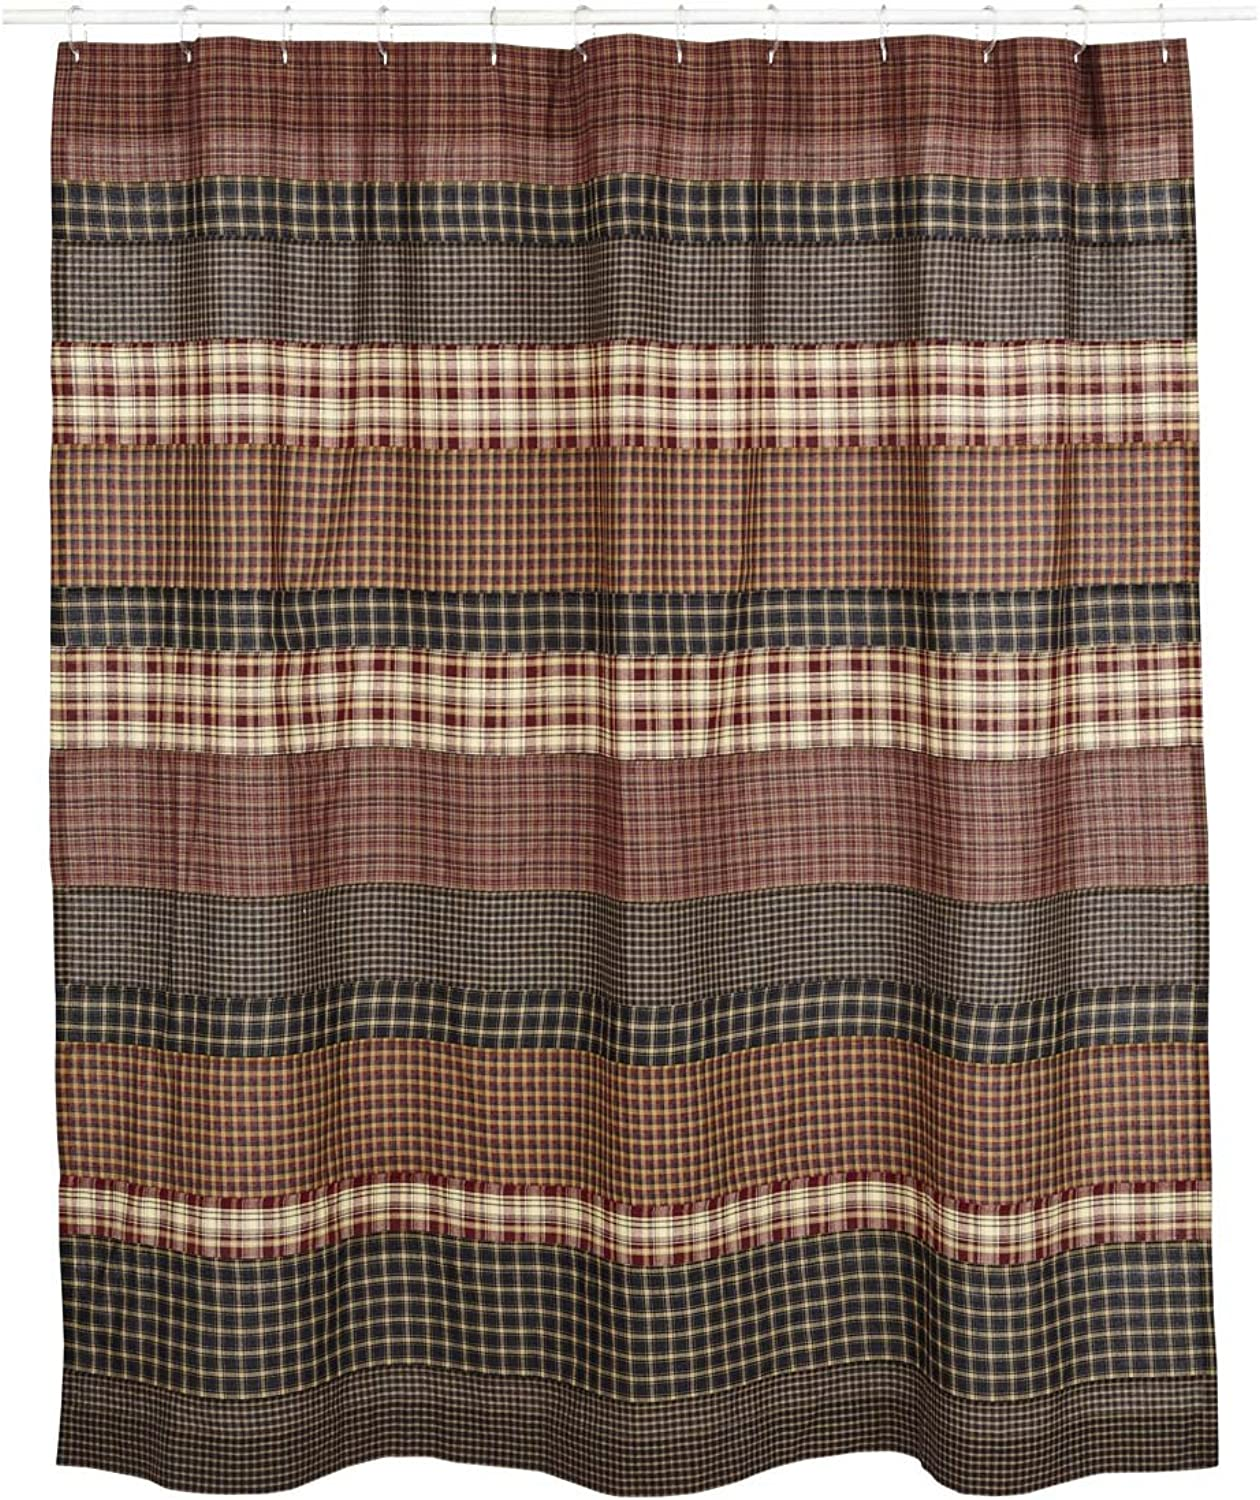 VHC Brands Rustic & Lodge Bath - Beckham Red Shower Curtain 72 x 72